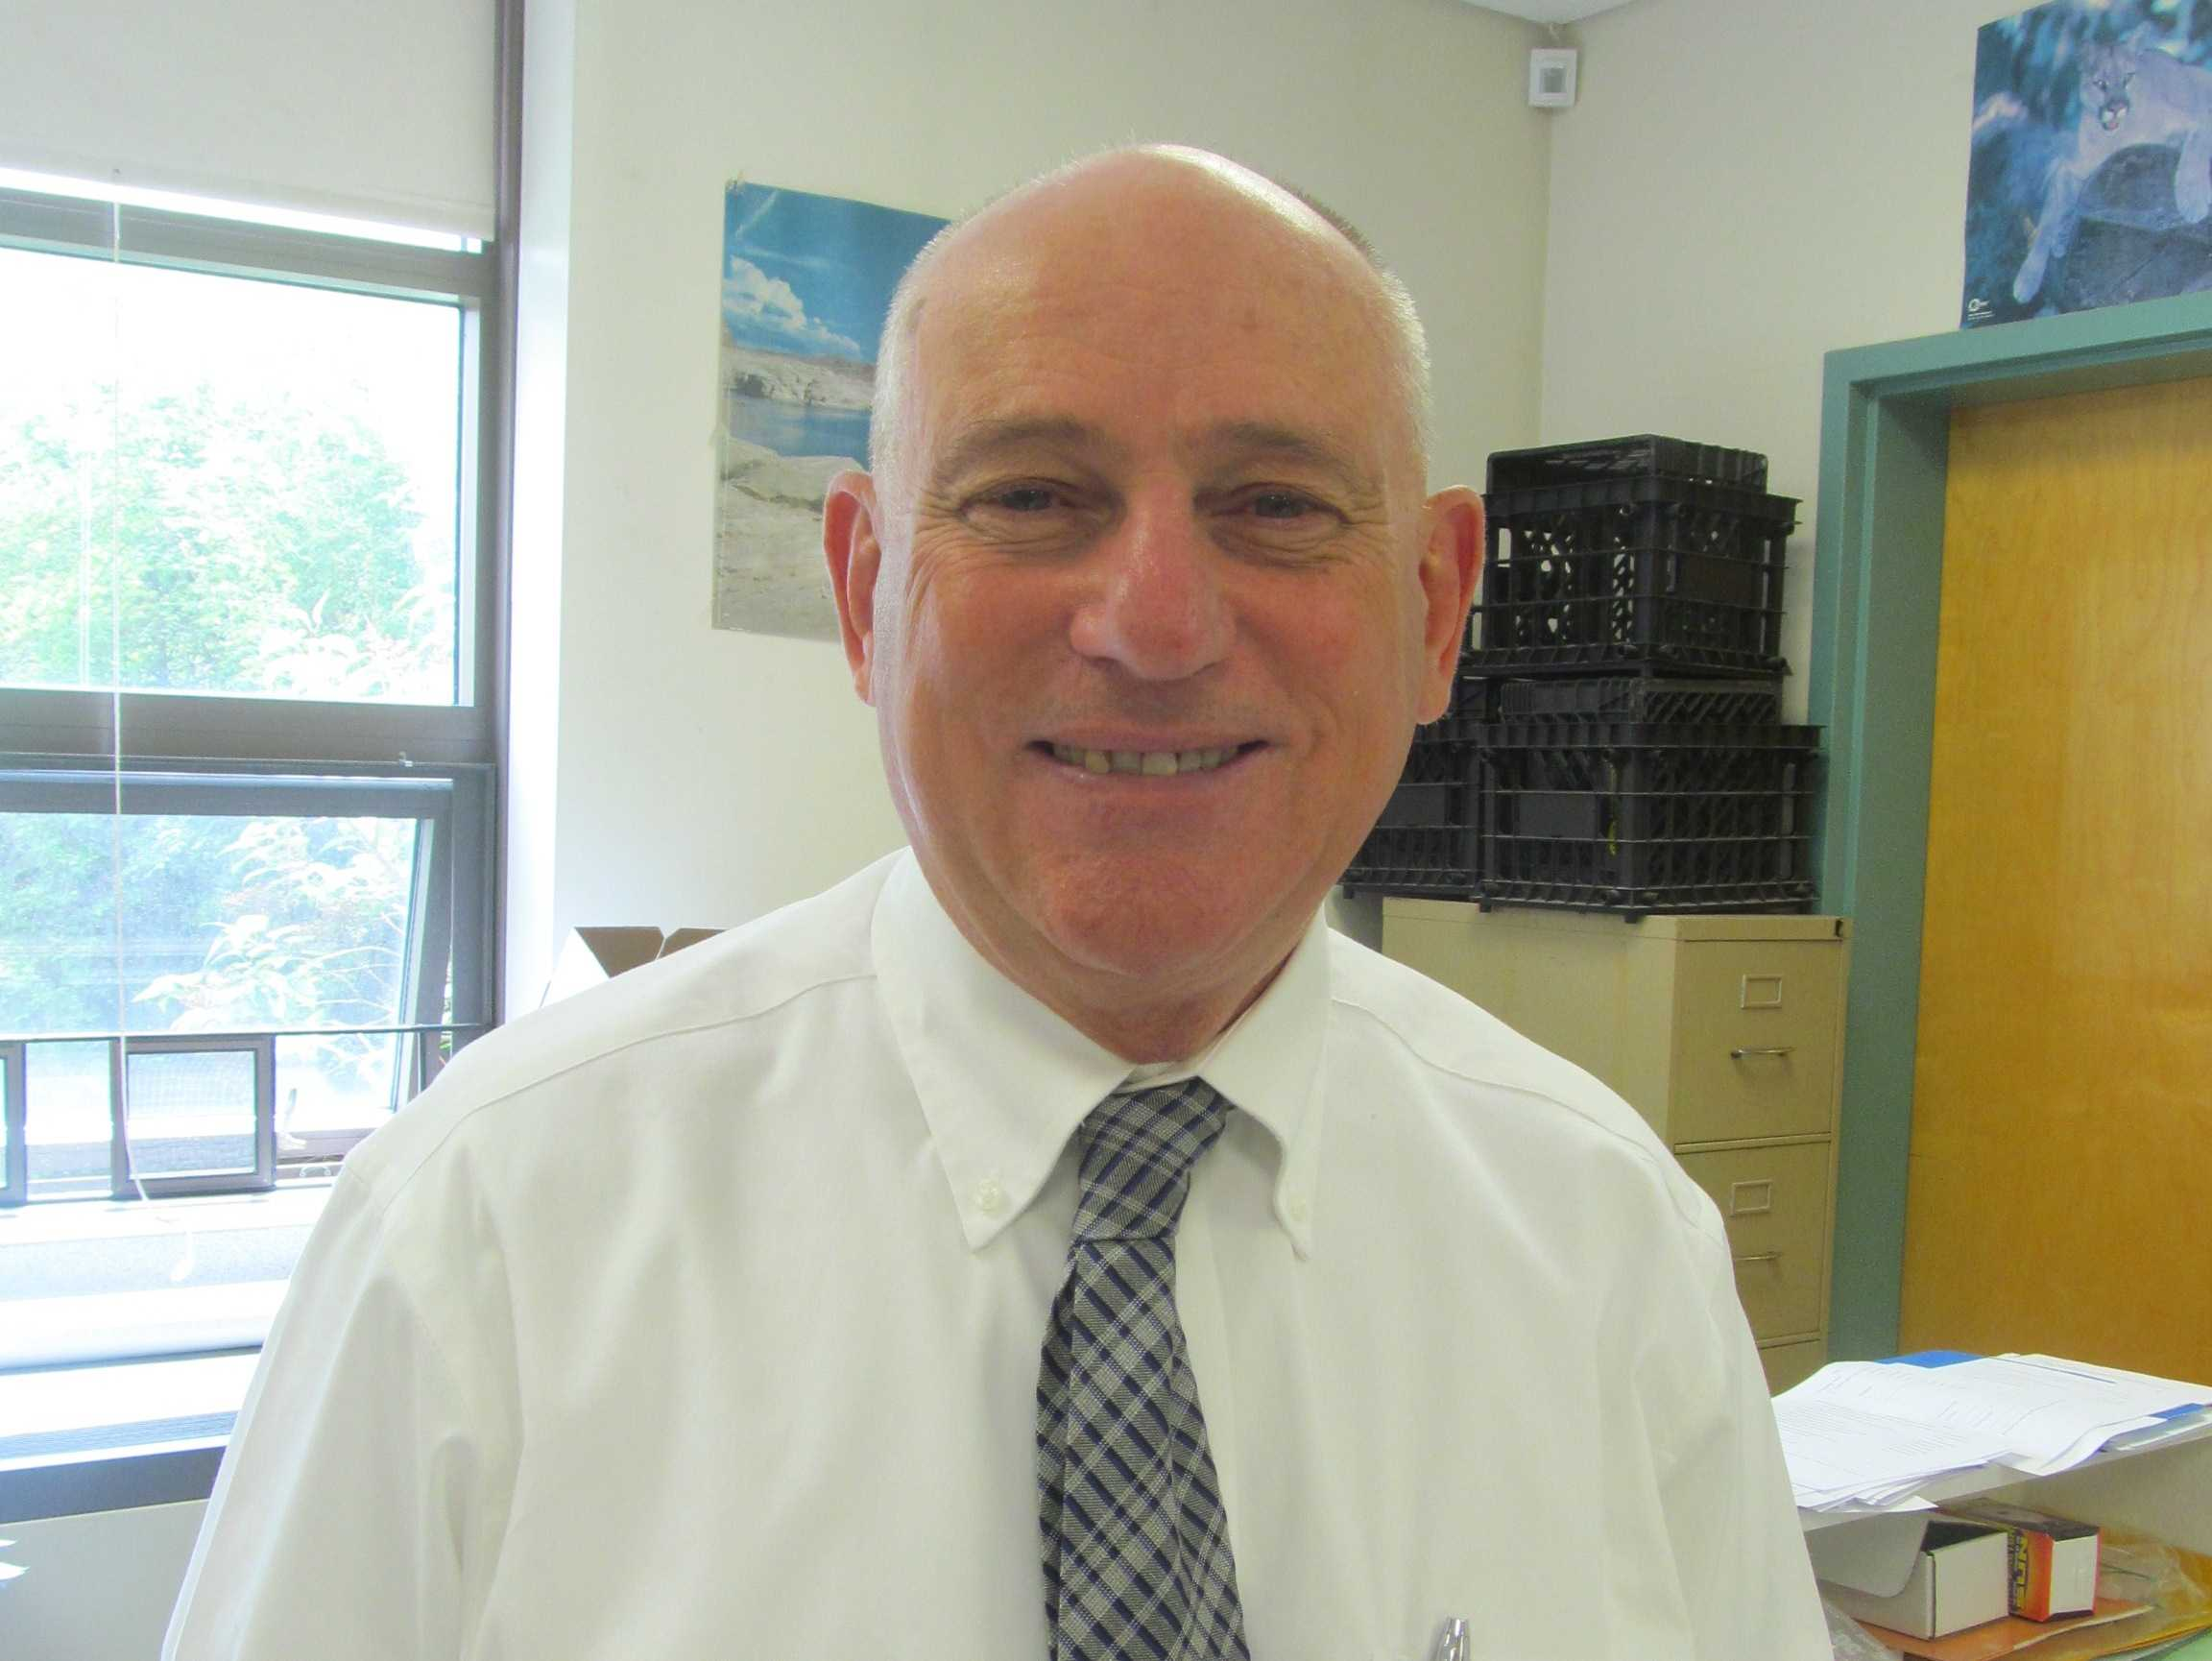 Dan Cedrone, longtime science teacher at Watertown Middle School, is set to retire after more than 30 years.